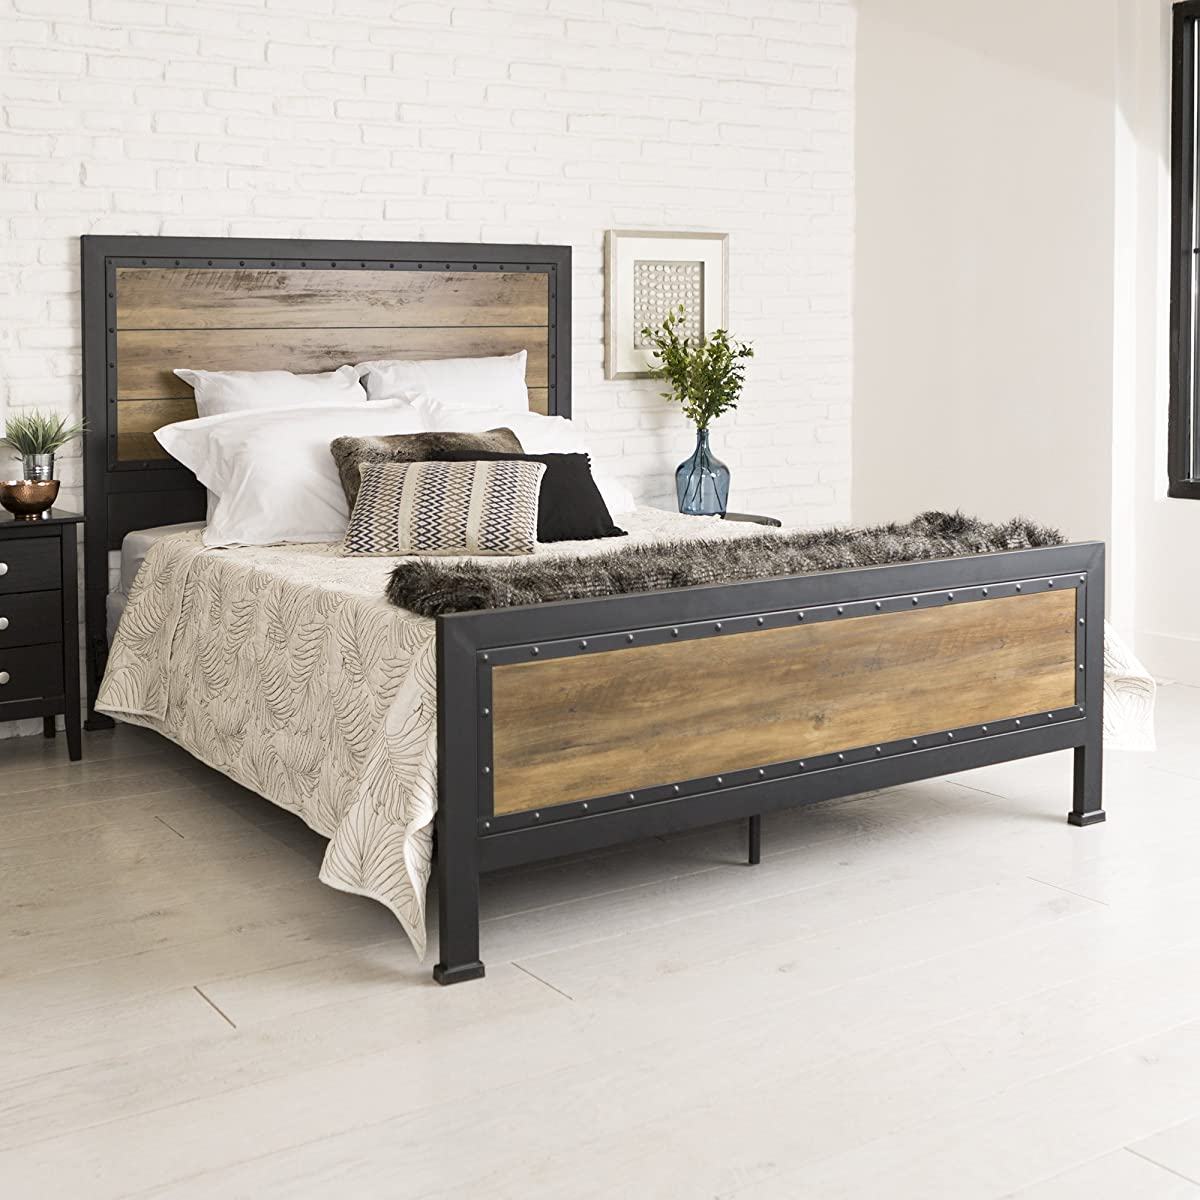 Home Accent Furnishings New Rustic Queen Industrial Wood and Metal Bed - Includes Head and Footboard